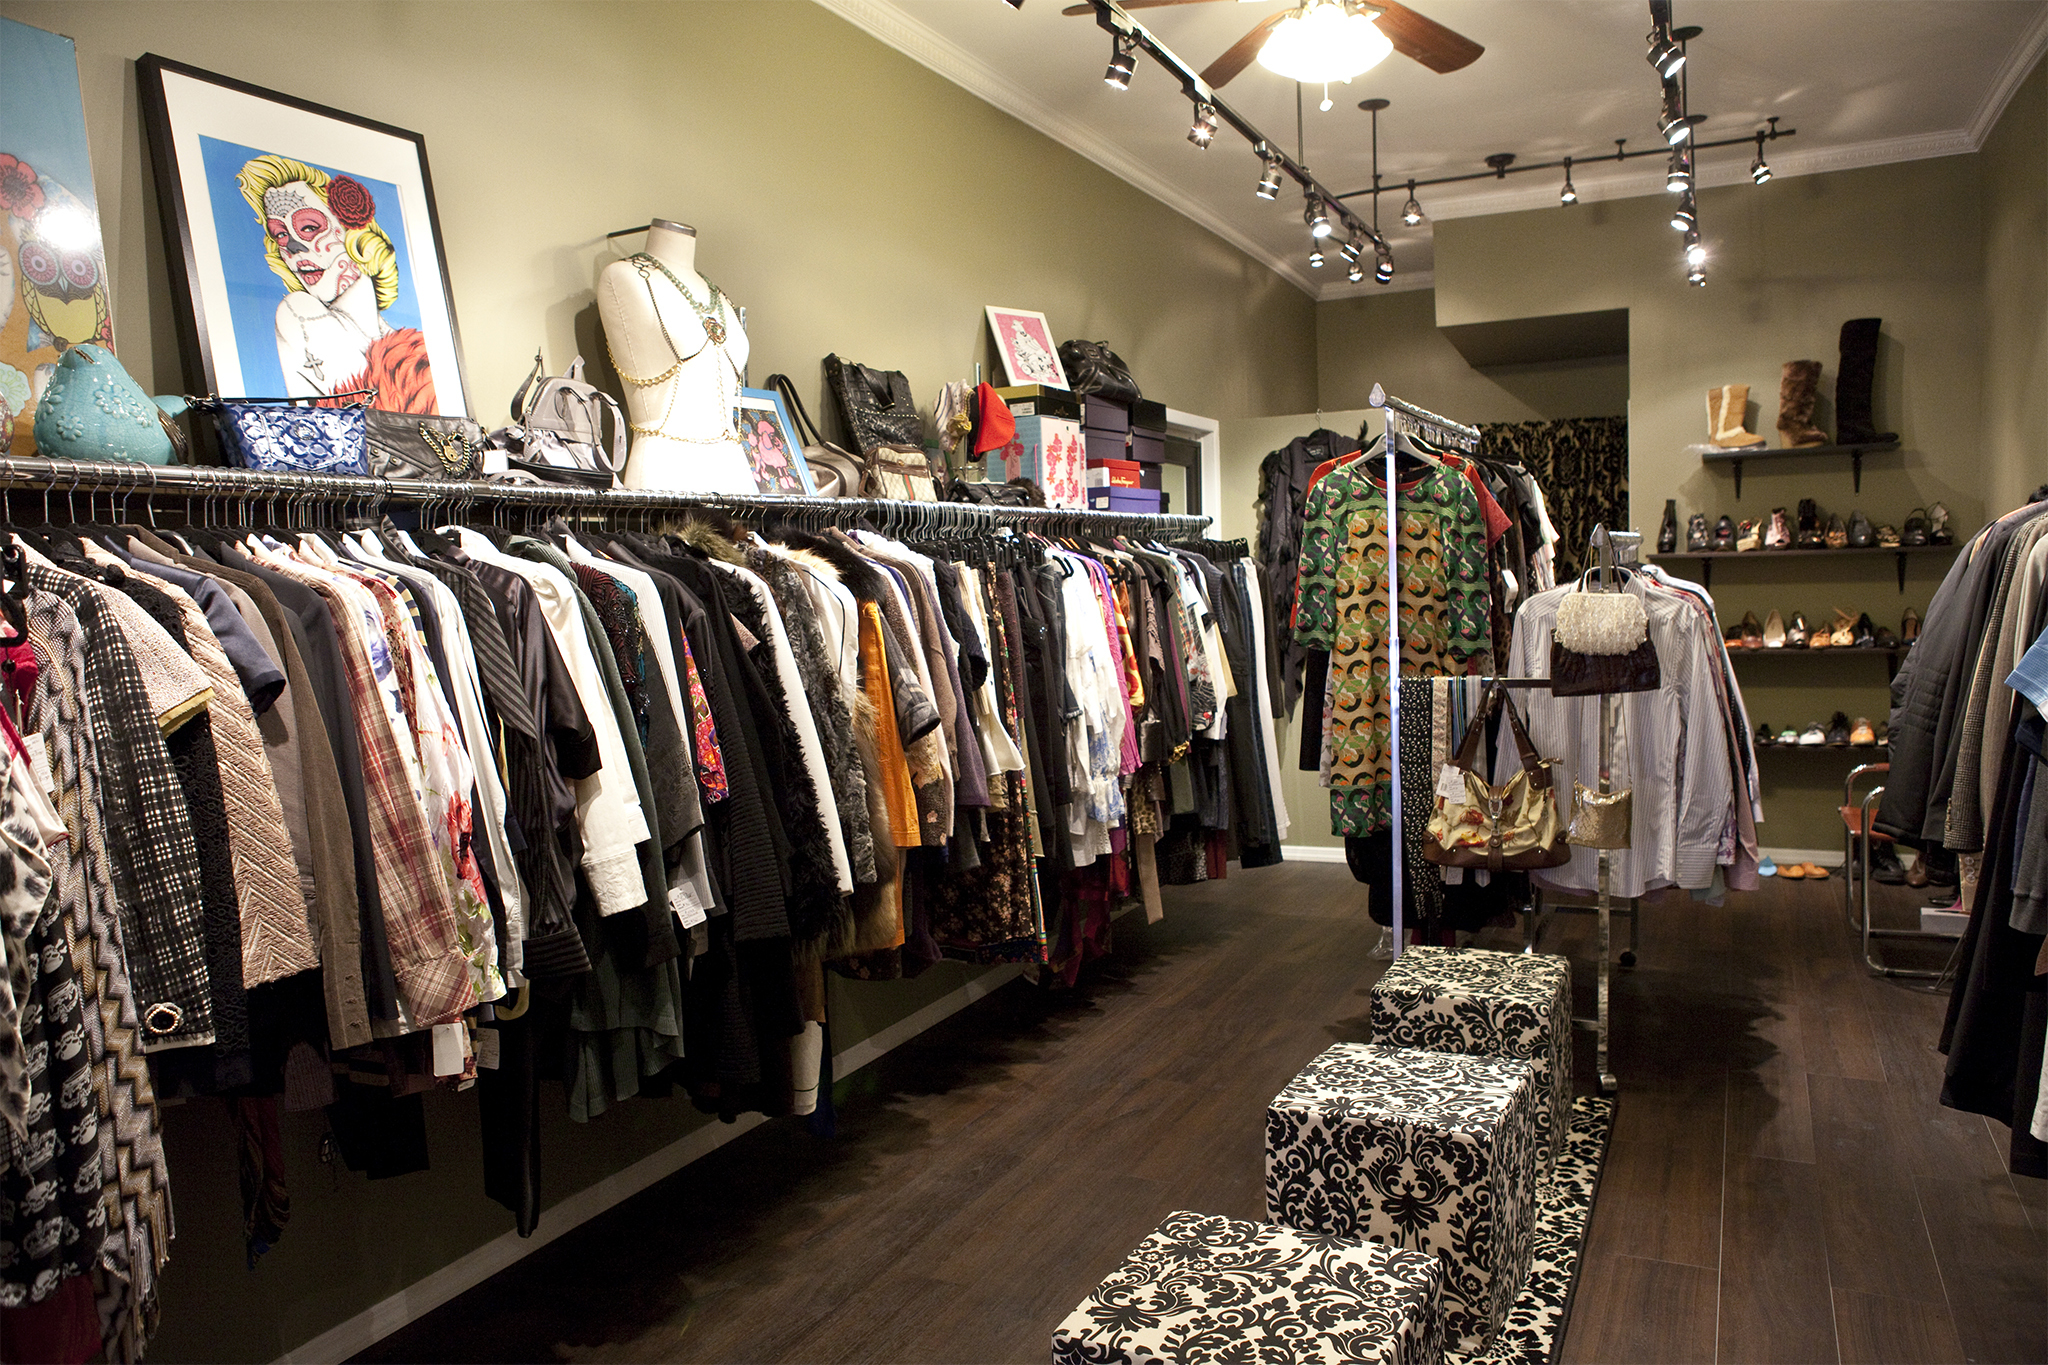 Manhattan Designer Clothing Outlets Consignment stores